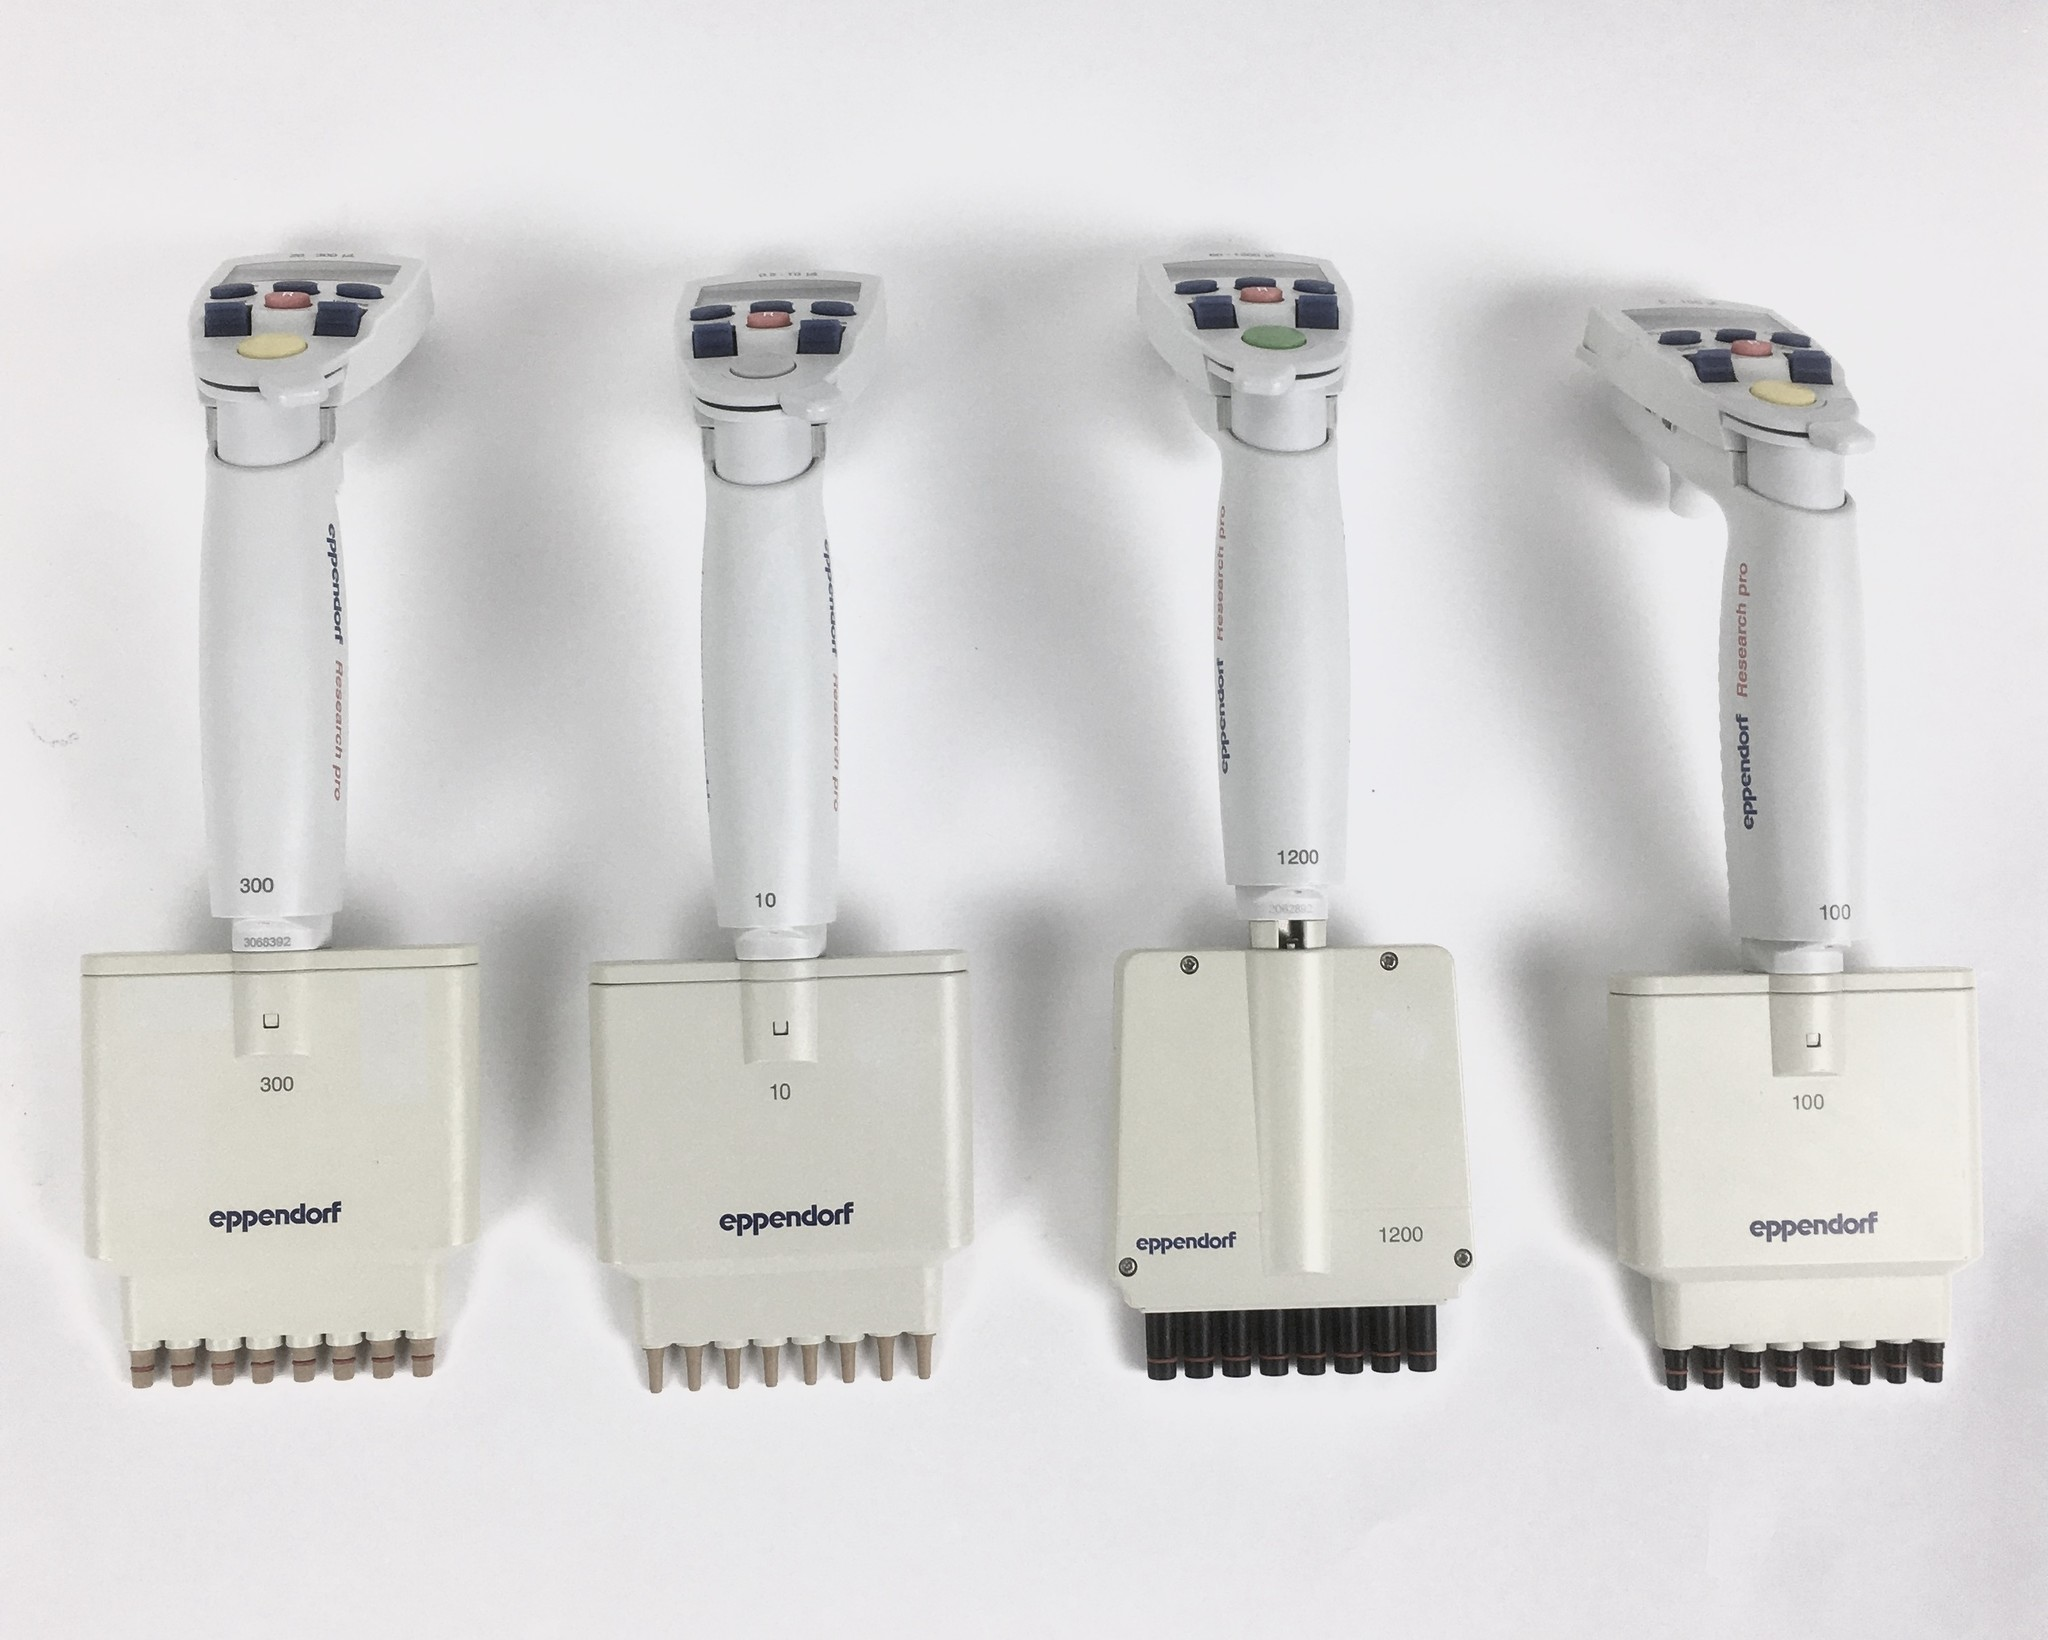 Eppendorf Eppendorf Research Pro electr. 8-Channel Pipettes - Set